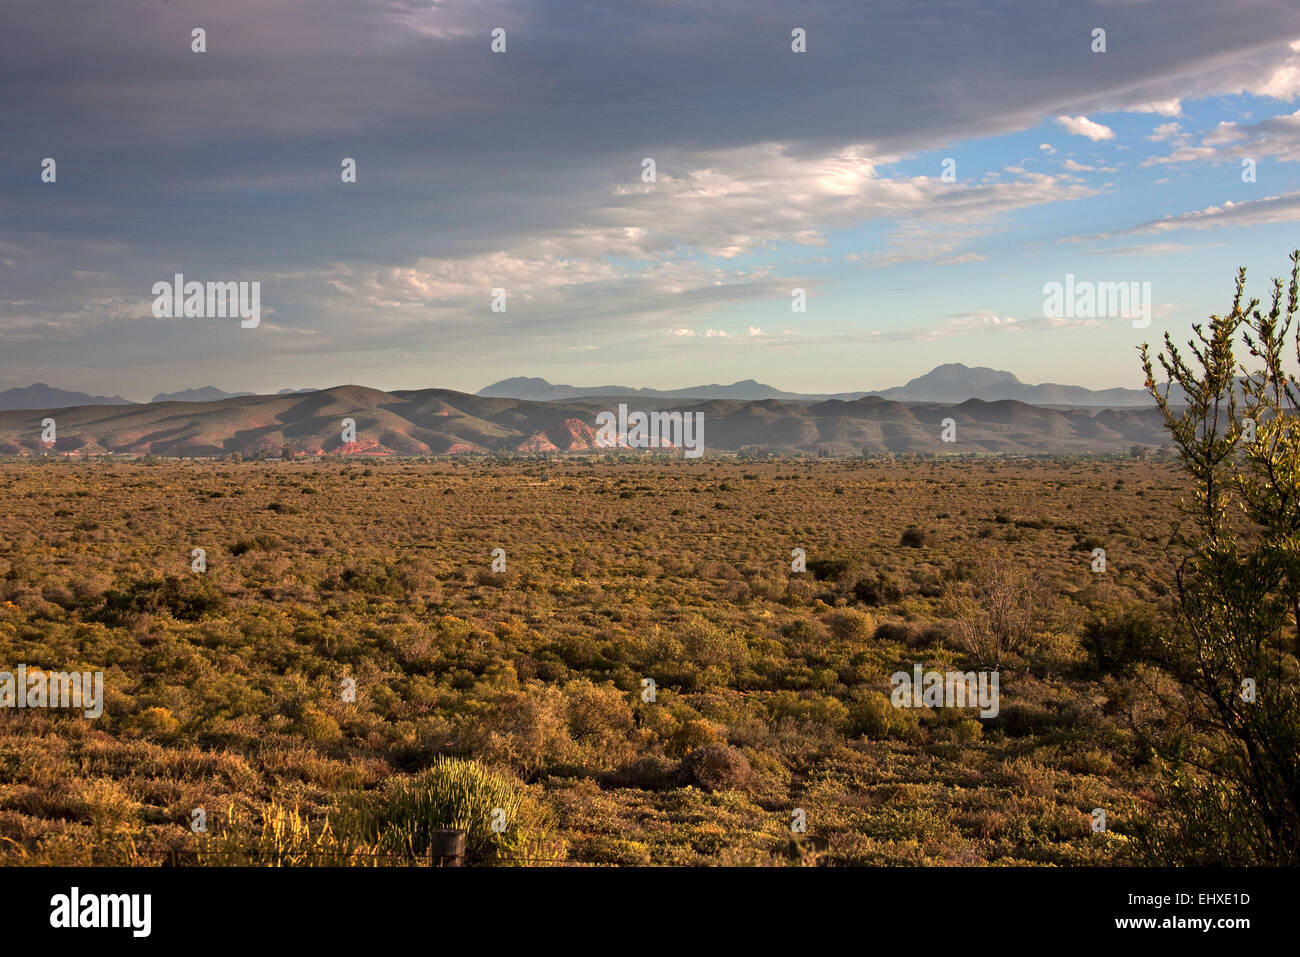 Bush land with mountain range in the background, Oudtshoorn, Oudtshoorn, Western Cape Province, South Africa - Stock Image